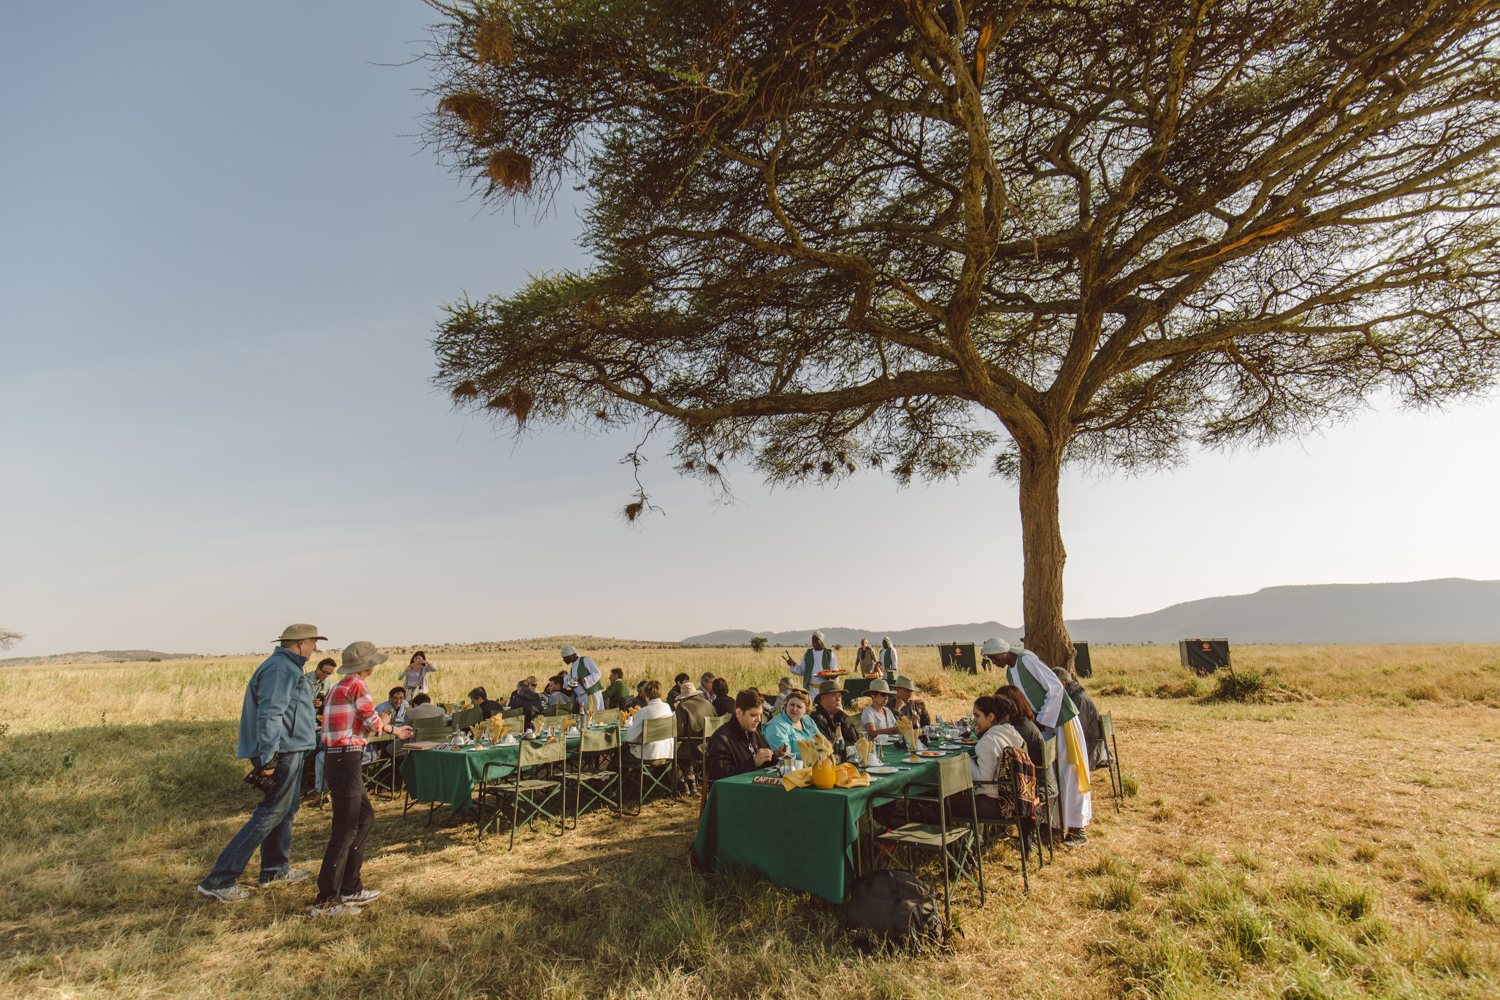 Breakfast is served- after the hot air balloon ride, everyone is invited to have a full English breakfast with the captains in charge of your personal flight.